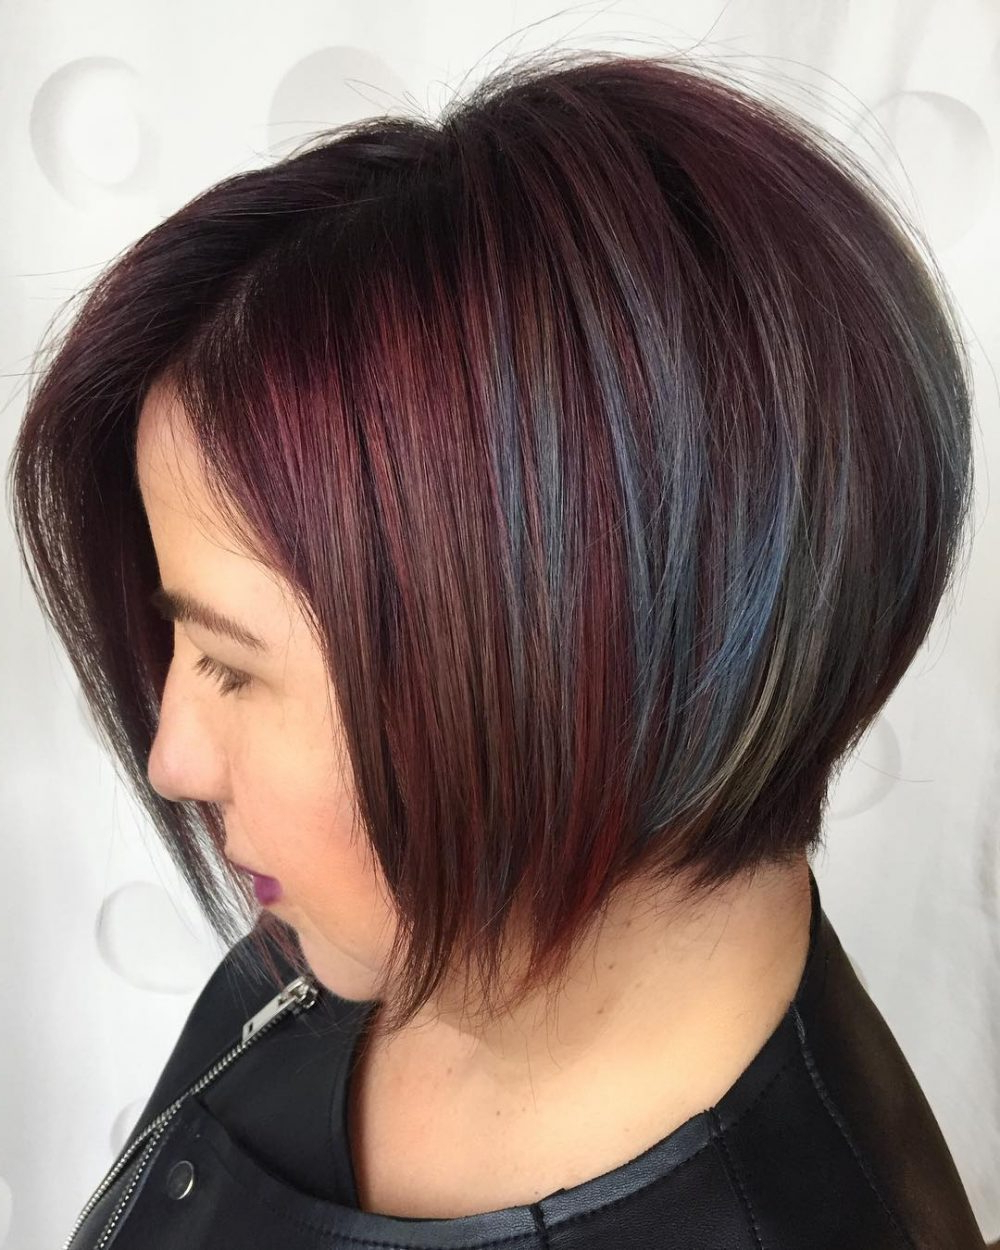 34 Greatest Short Haircuts And Hairstyles For Thick Hair For 2018 Regarding Short Haircuts For Thick Fine Hair (View 15 of 25)